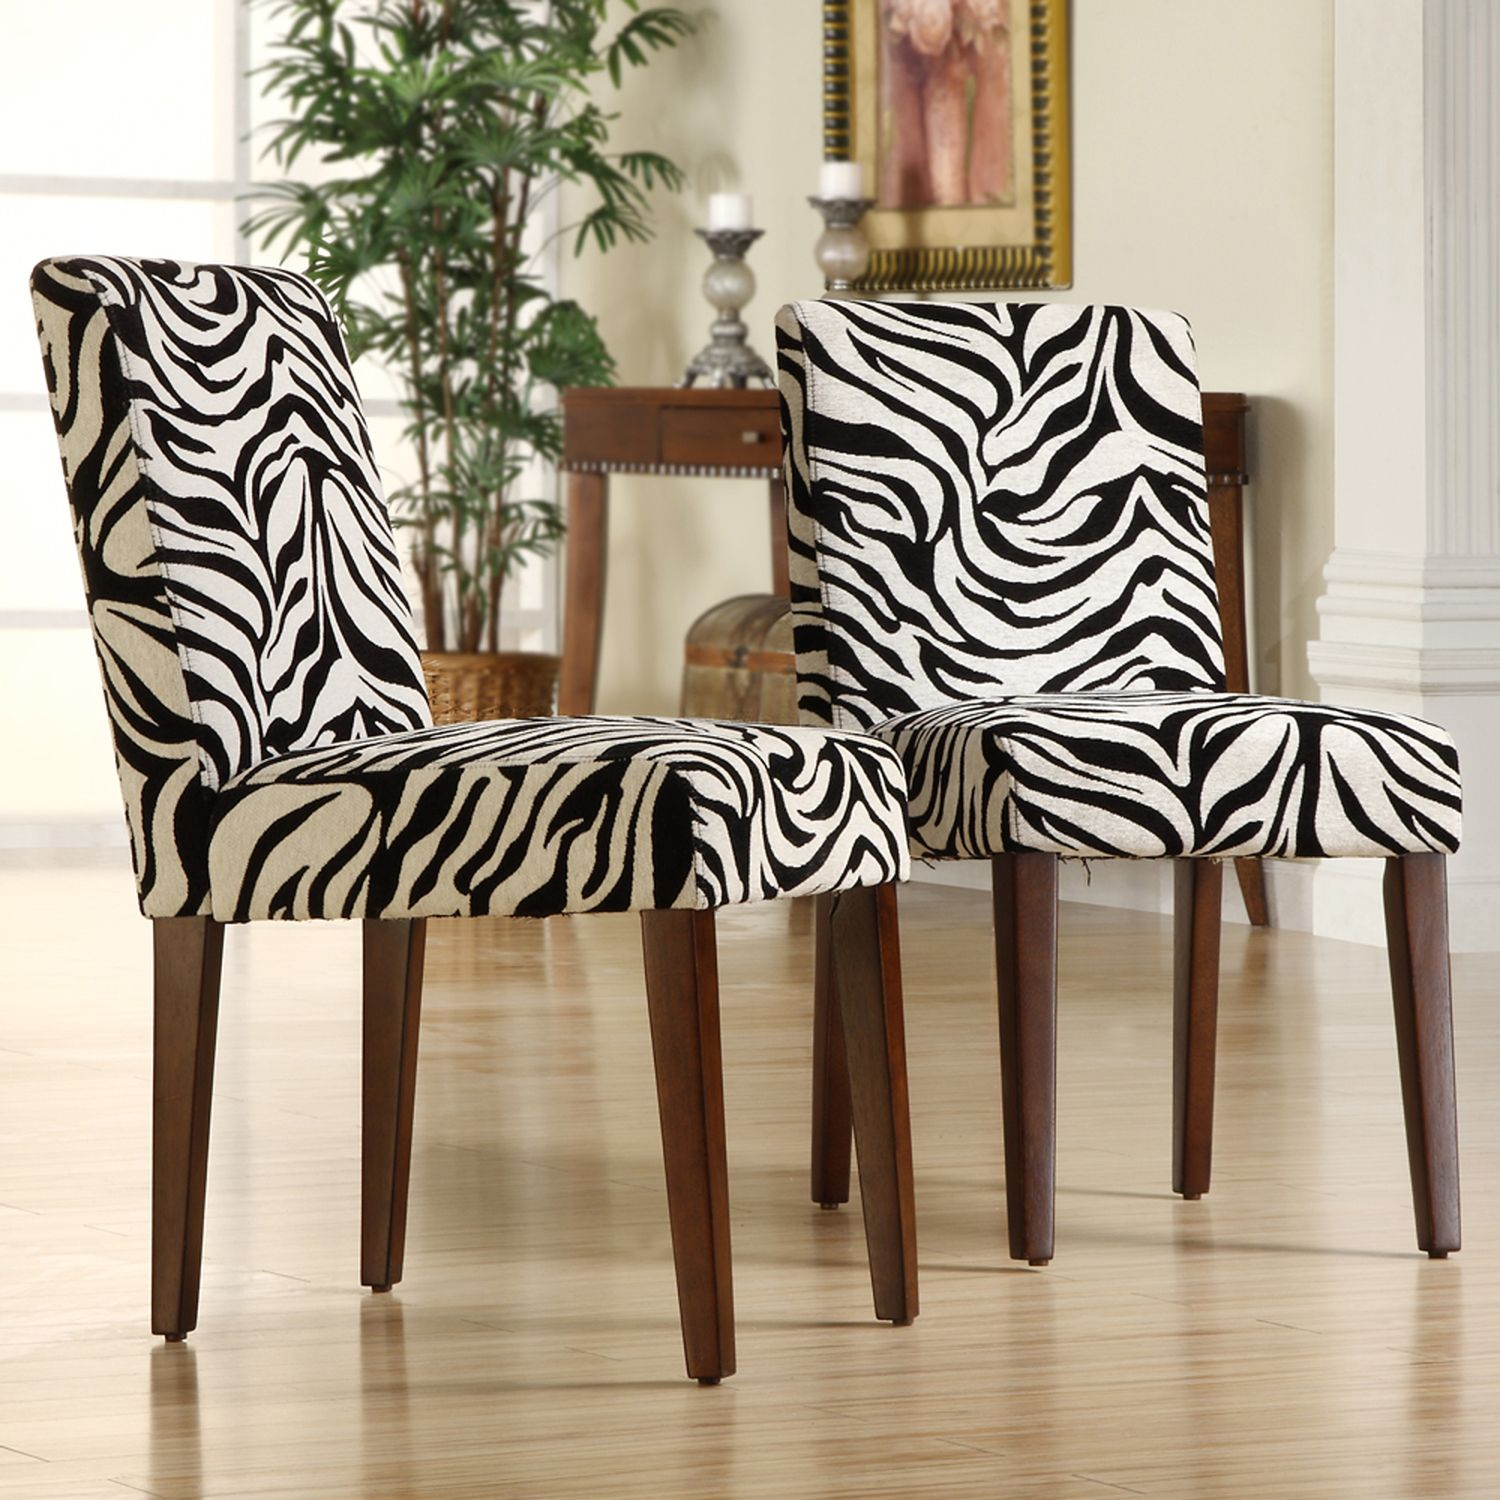 Update your dining room in an instant with these striking print